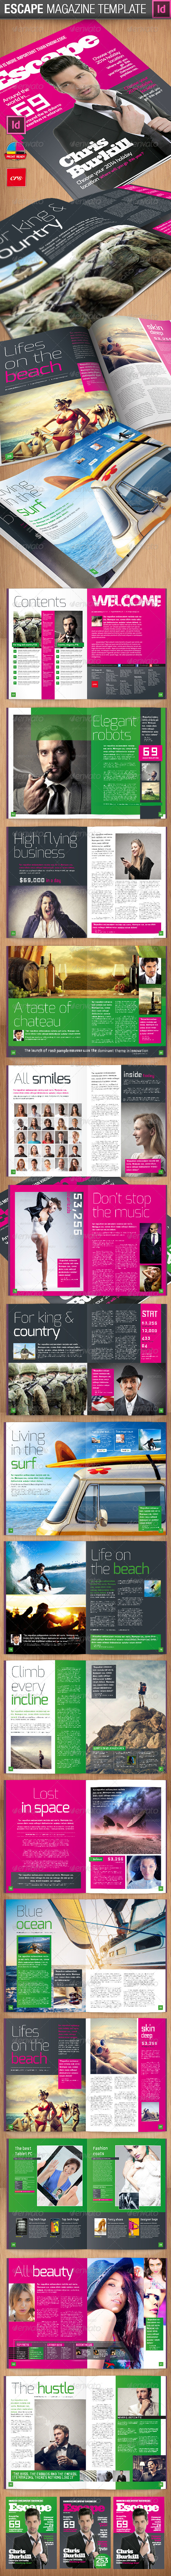 Escape Magazine Template - Magazines Print Templates